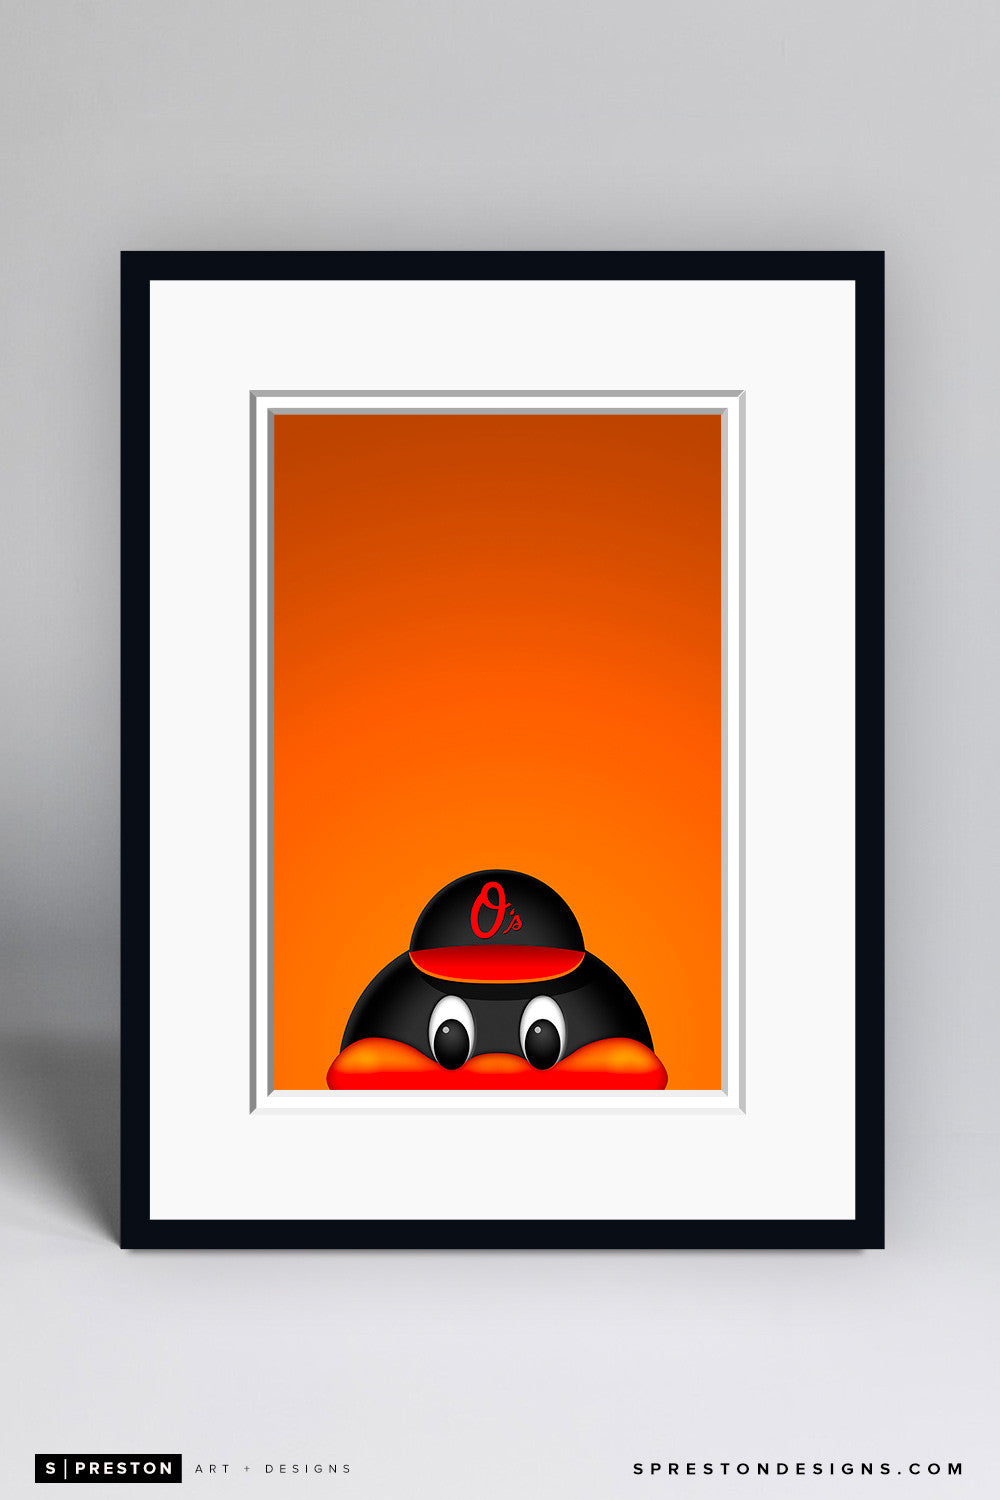 Minimalist Oriole Bird - Baltimore Orioles - S. Preston